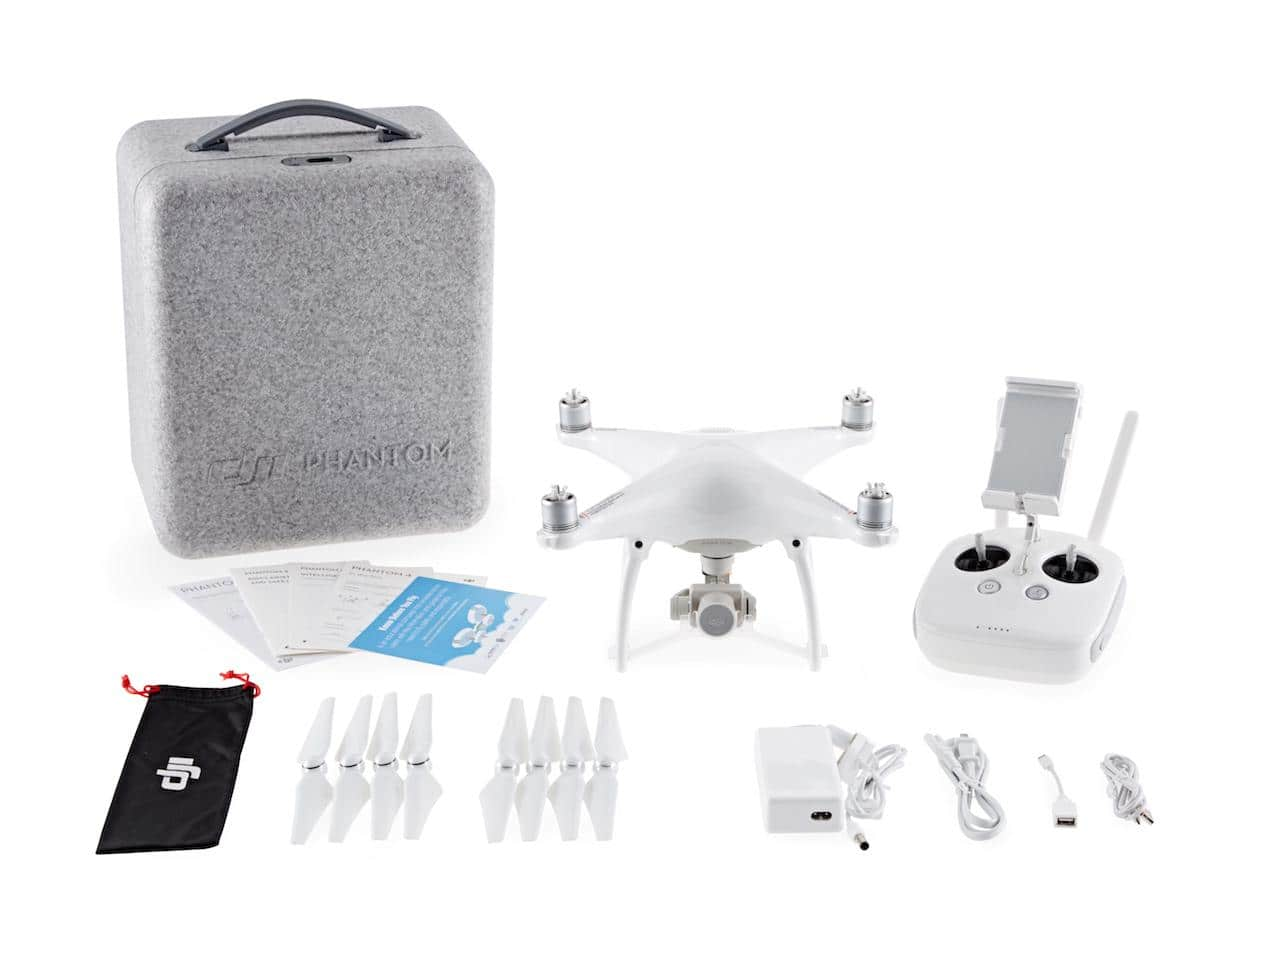 DJI Phantom 4 + extra battery + $50GC + $84.90 in Eggpoints $849 @ newegg